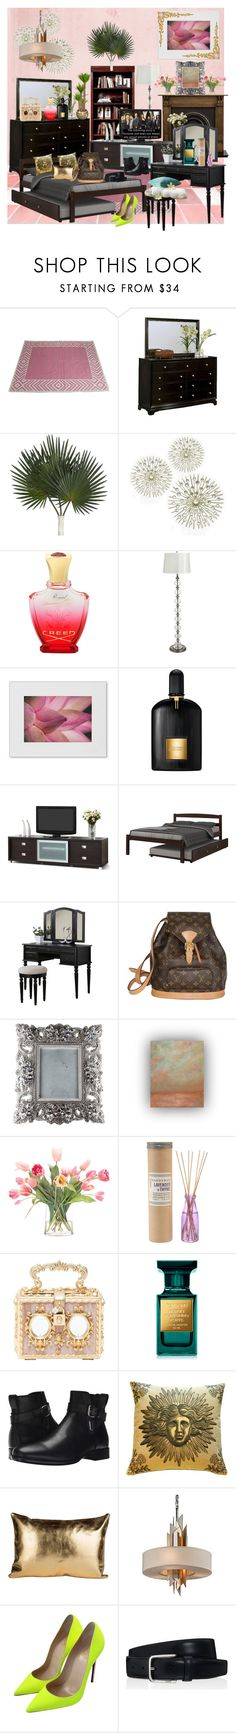 """""""Chill Time...."""" by seanahr ❤ liked on Polyvore featuring Madeline Weinrib, Abbyson Living, WALL, Creed, Pier 1 Imports, NOVICA, Tom Ford, Baxton Studio, Donco and Poundex"""